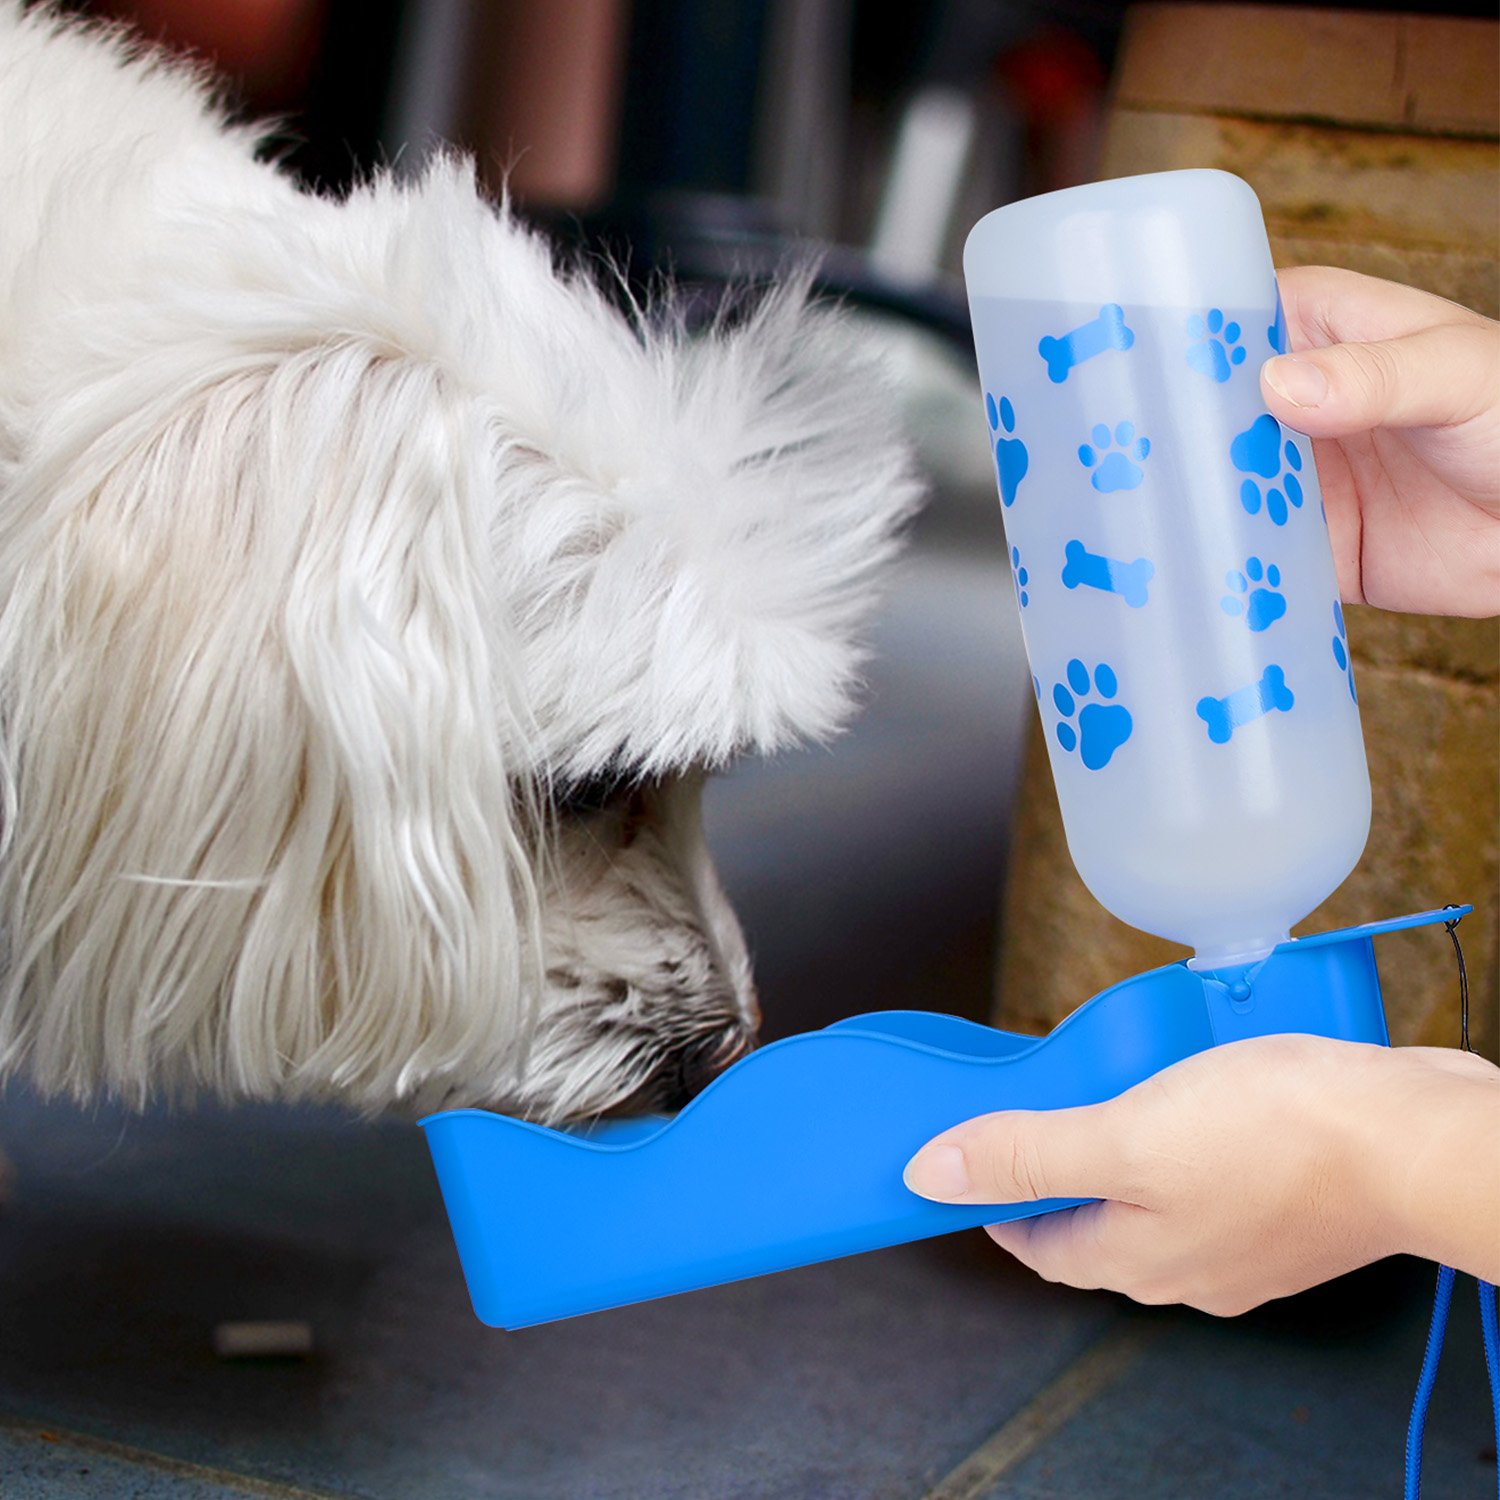 ANPETBEST Travel Water Bottle 650ML / 22oz Water Dispenser Portable Mug for Dogs,Cats and Other Small Animals (Blue-650ML) by ANPETBEST (Image #1)